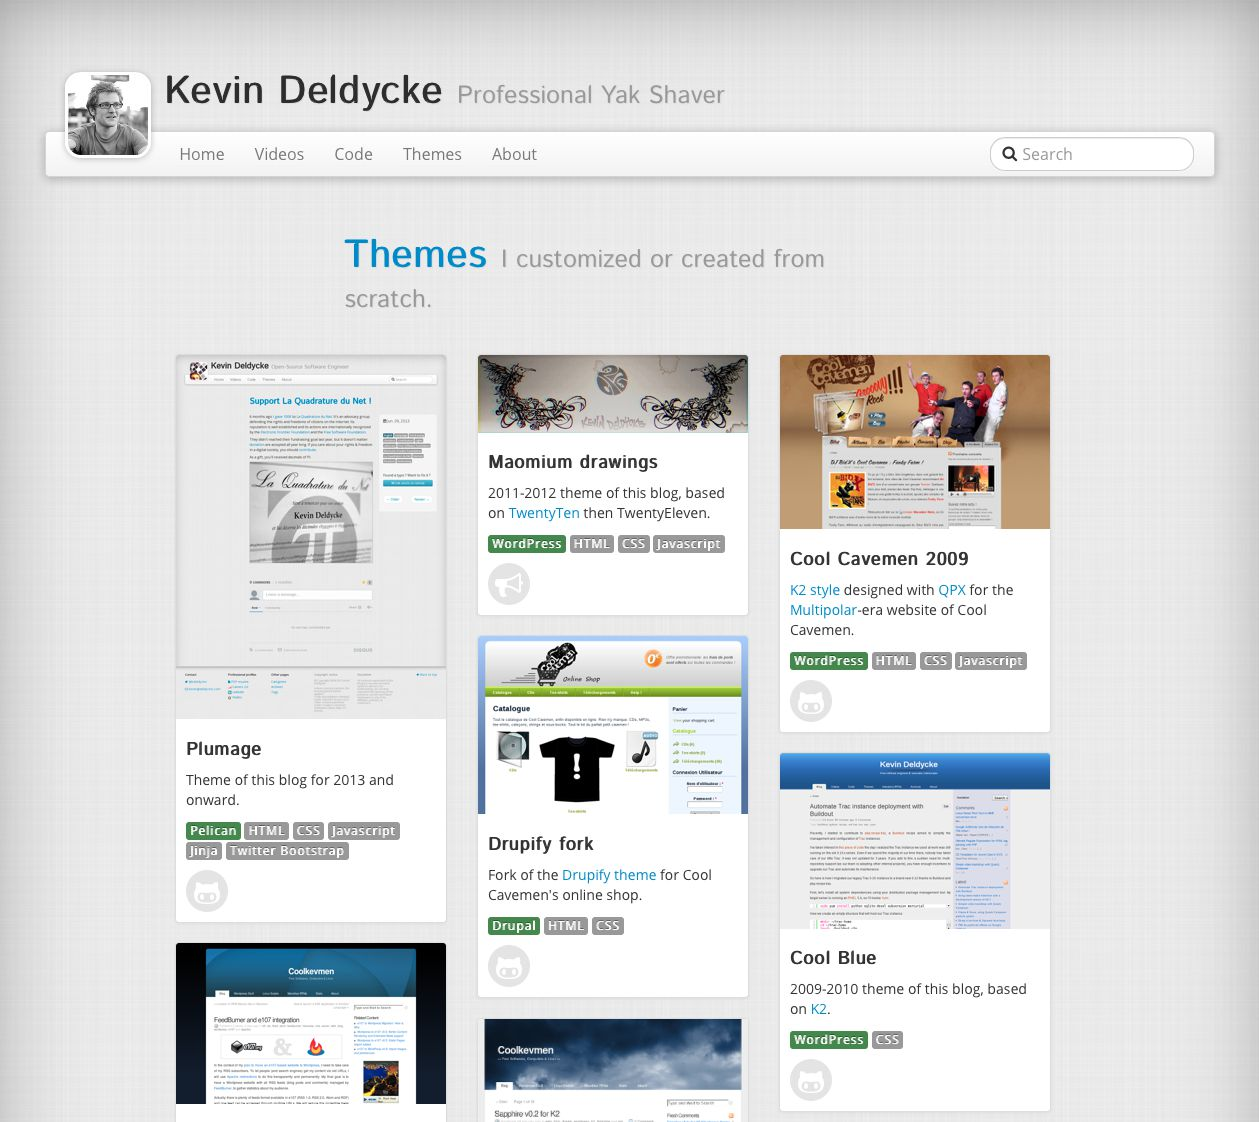 Plumage projects: themes showcase